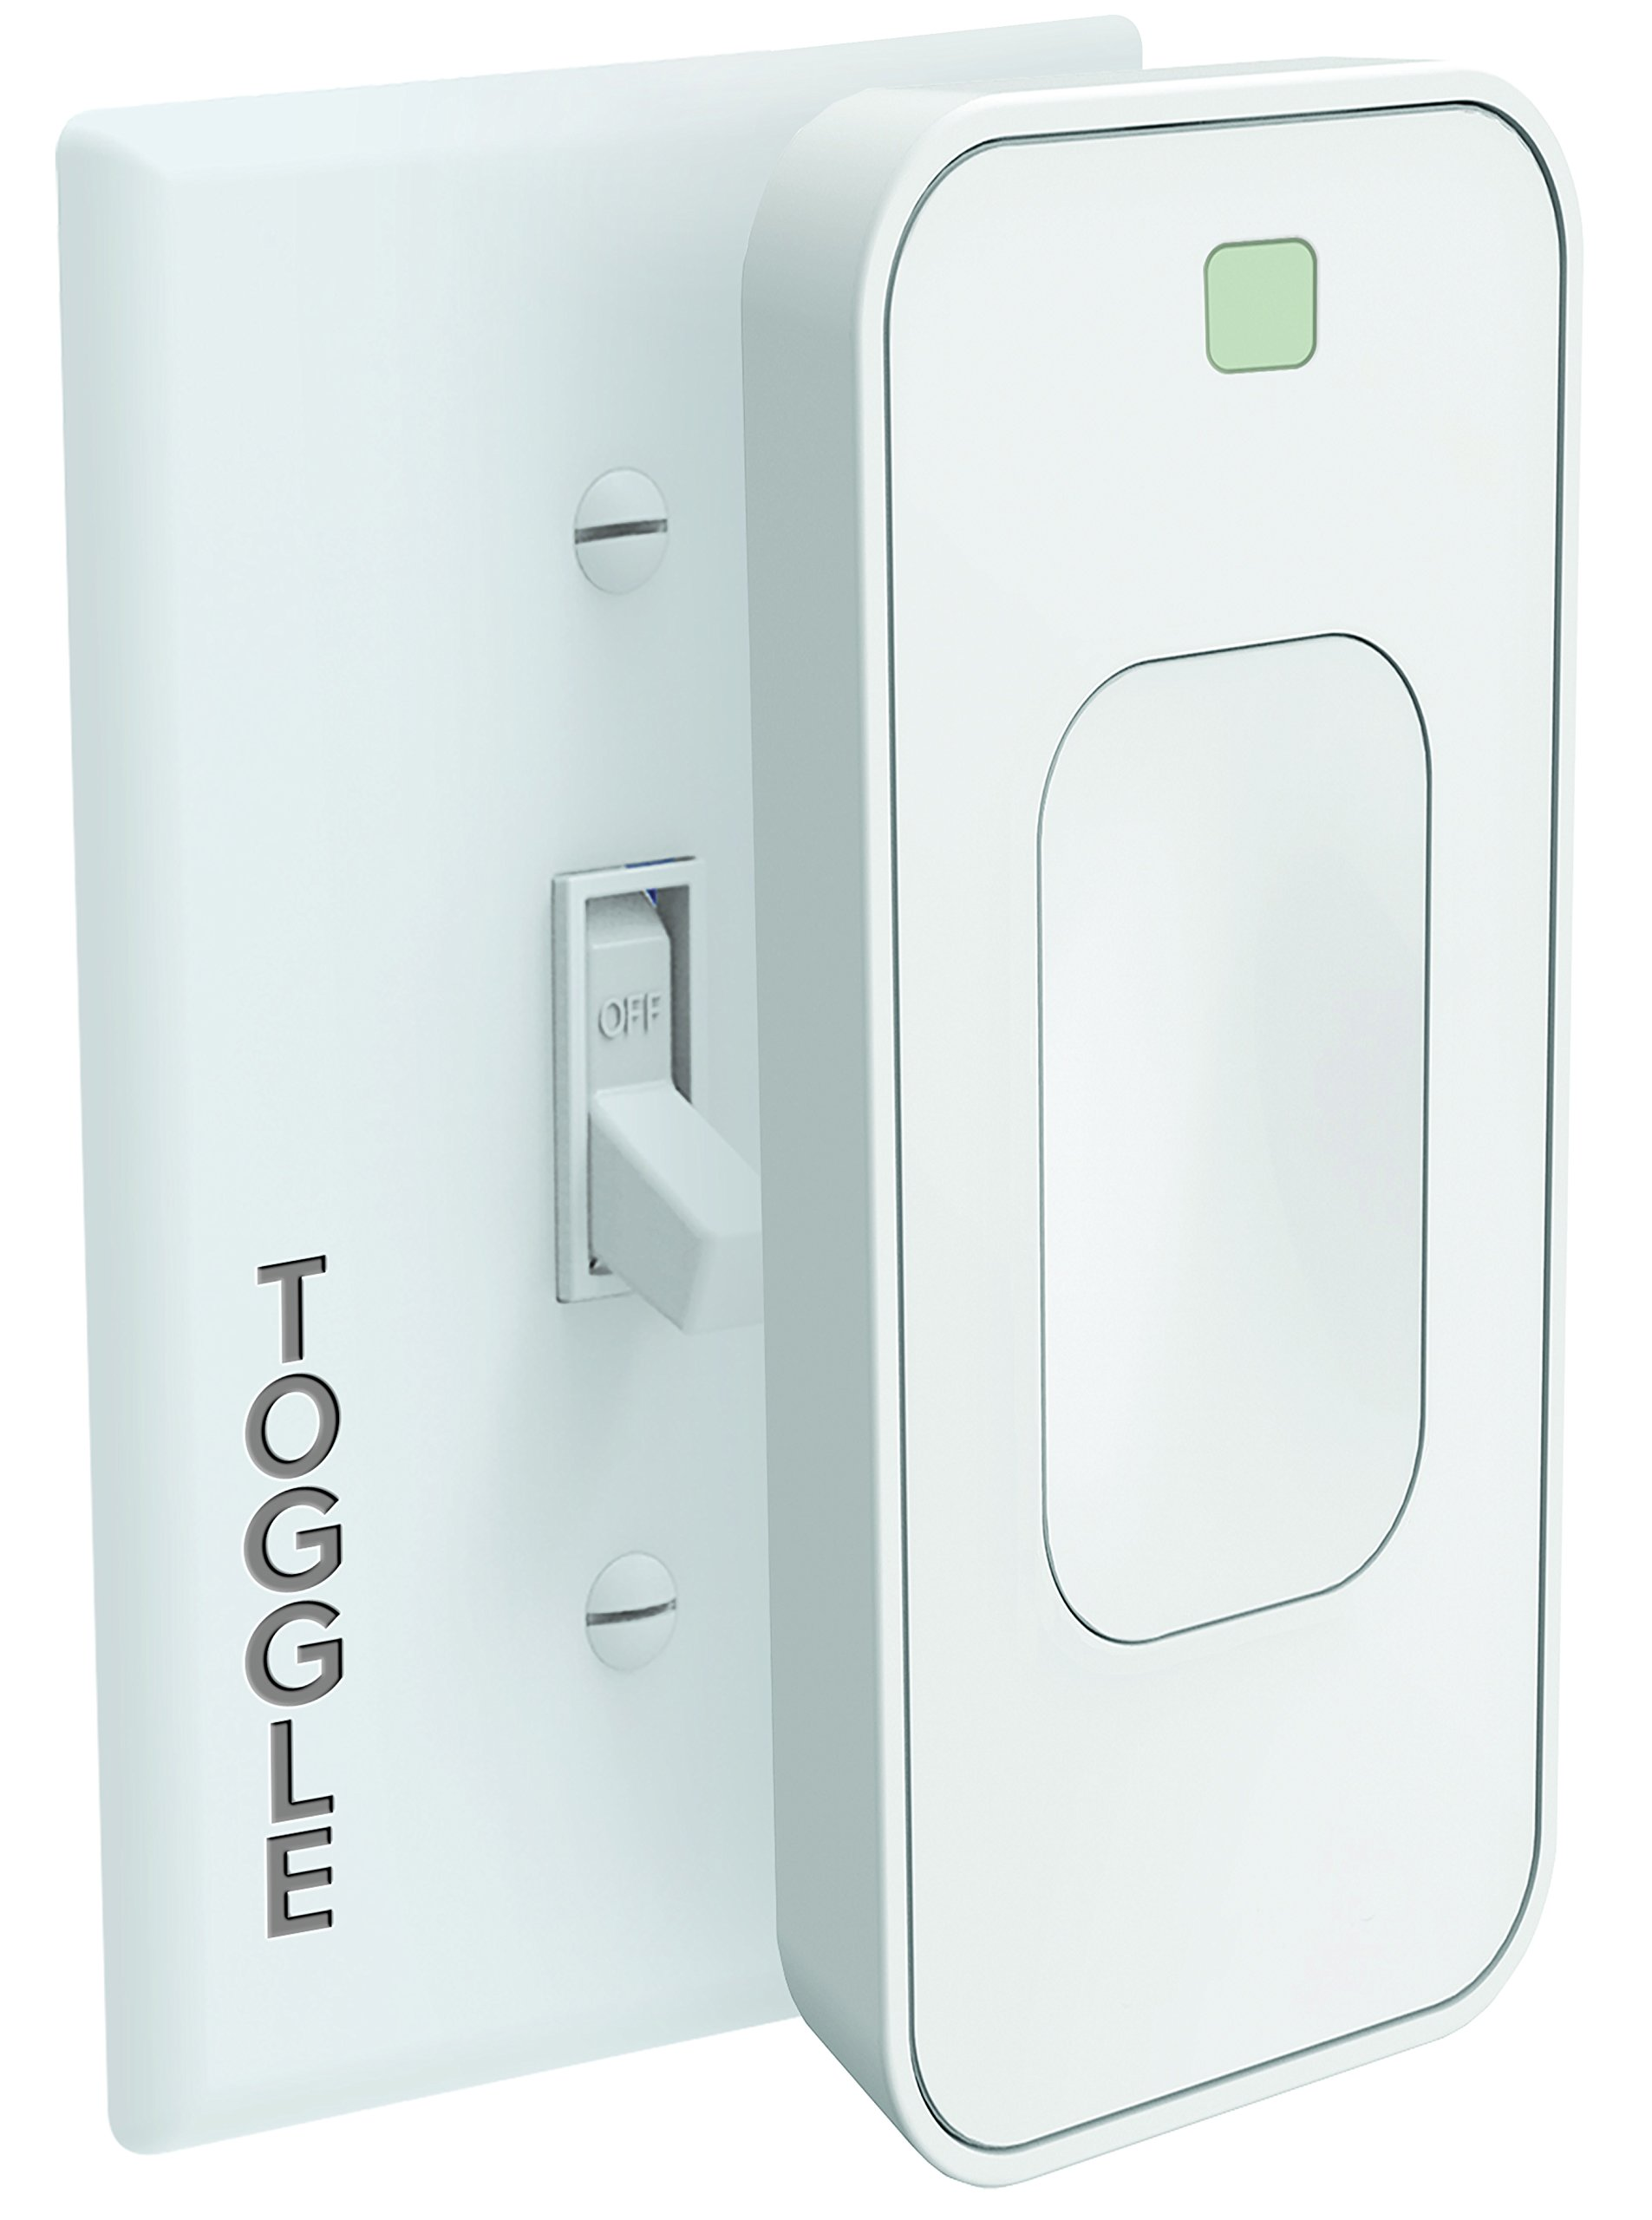 Switchmate Motion Activated Snap On Instant Smart Light Switch Wiring A First Styletoggle Slim Is The That Can Be Installed In One Second No Configuration Tools Or Wi Fi